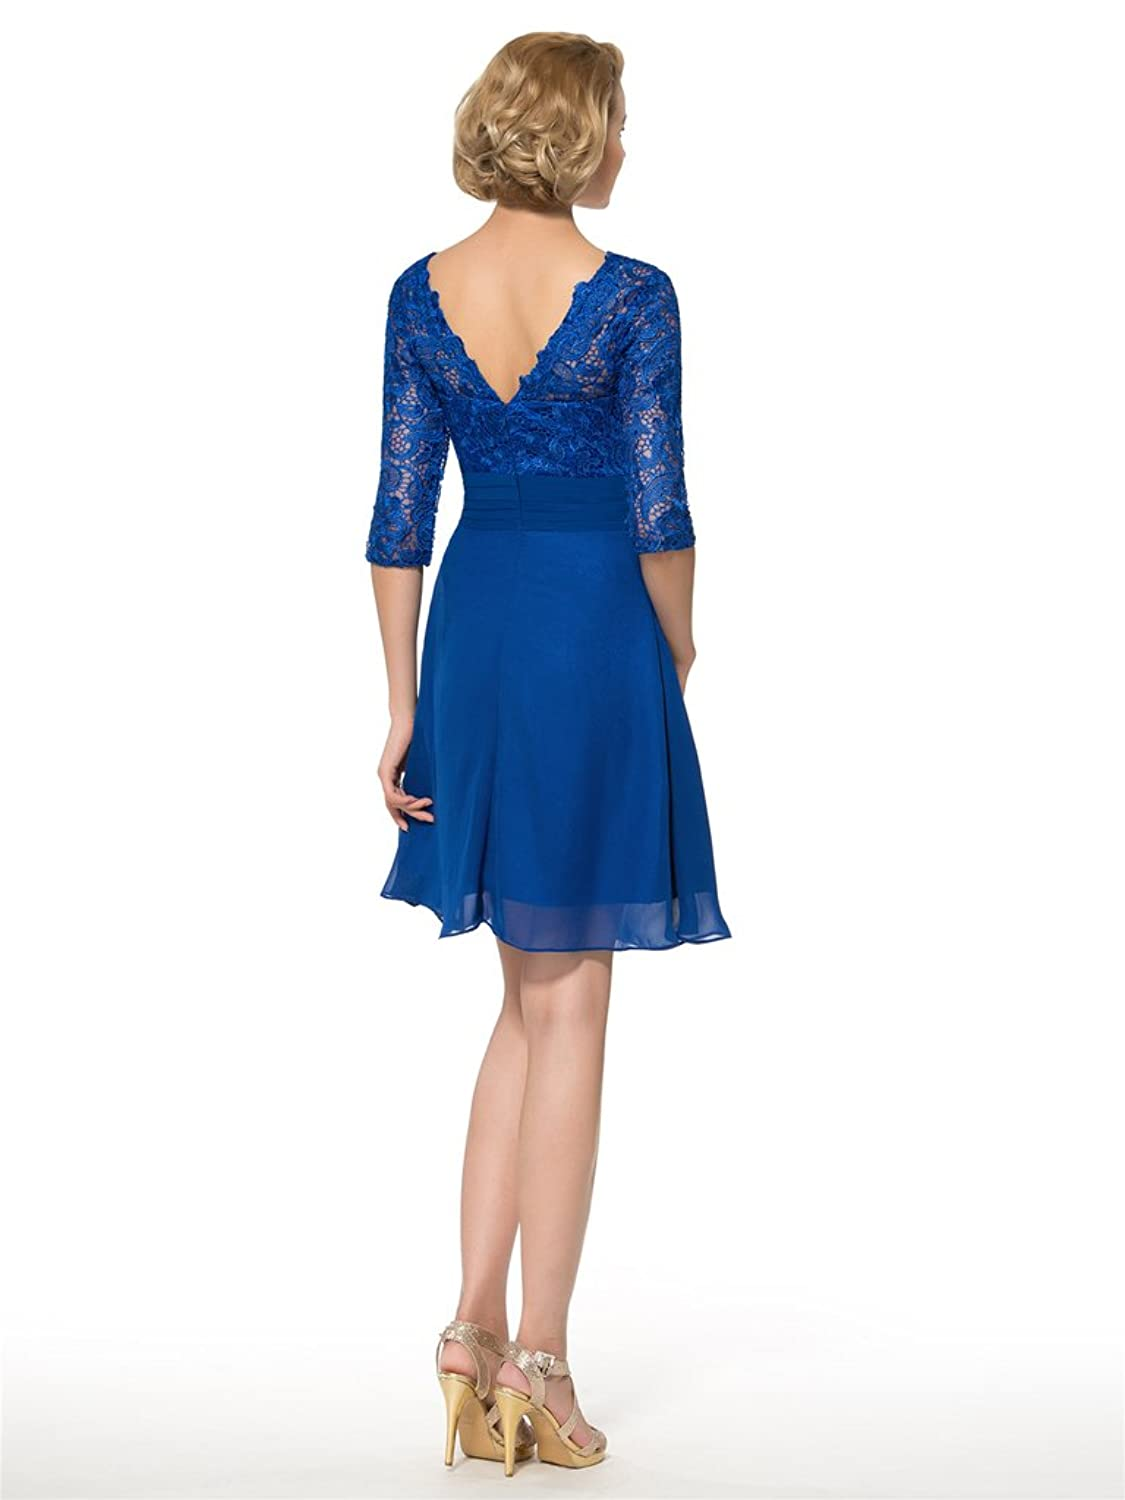 CLOCOLOR Women's Knee-length Chiffon Lace Double V-neck Mother of the Bride Dress for Weddings